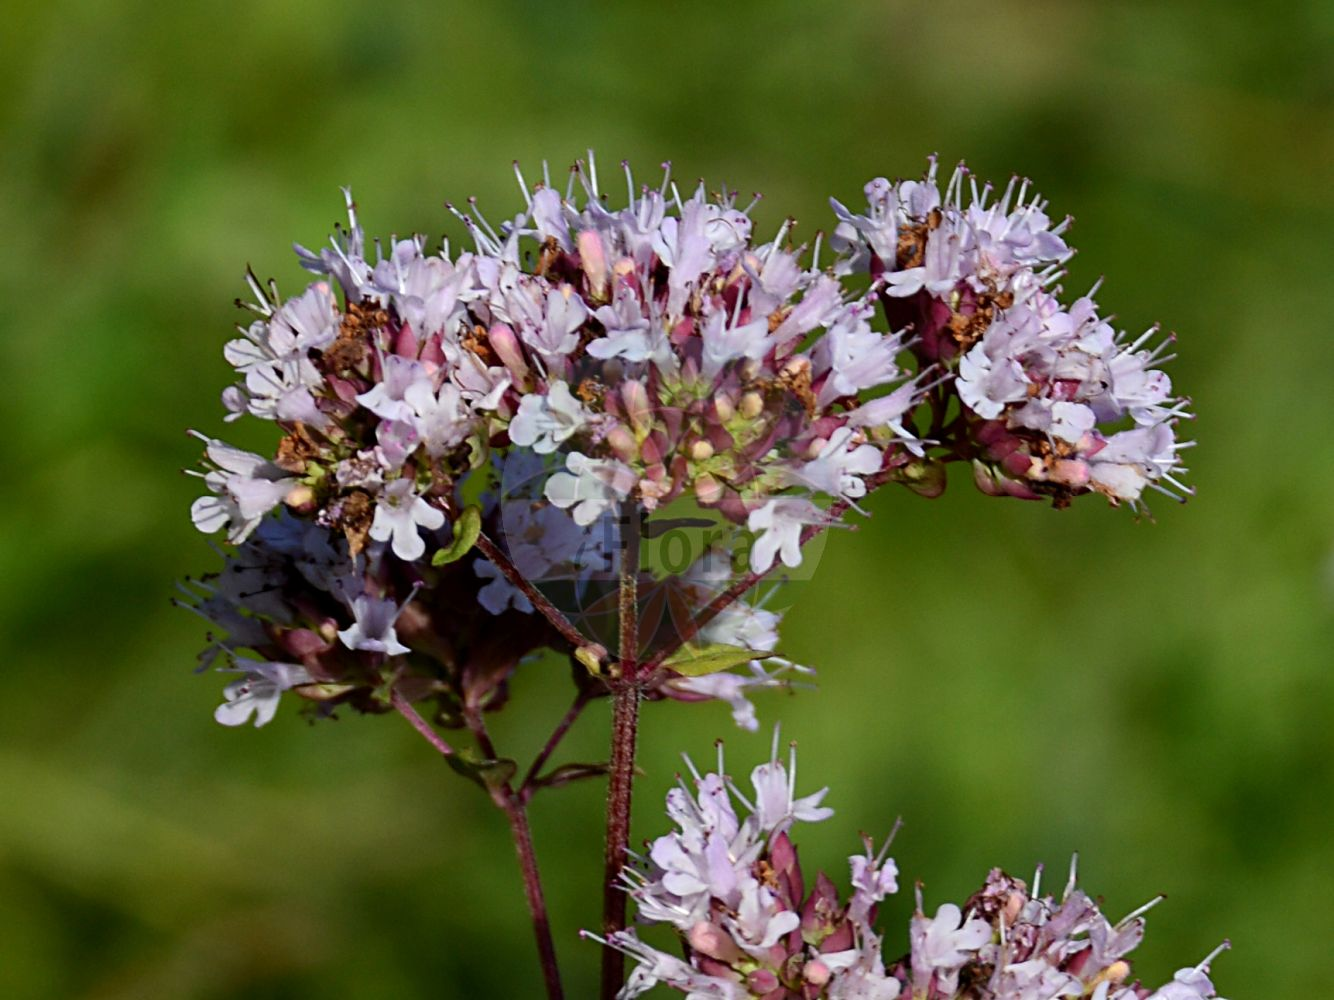 Foto von Origanum vulgare (Gewoehnlicher Dost - Wild Marjoram). Das Foto wurde in Berlin, Deutschland aufgenommen. ---- Photo of Origanum vulgare (Gewoehnlicher Dost - Wild Marjoram).The picture was taken in Berlin, Germany.(Origanum vulgare,Gewoehnlicher Dost,Wild Marjoram,Thymus origanum,Falscher Staudenmajoran,Wilder Majoran,Bastard Marjoram,Oregano,Common Marjoram,Origanum,Dost,Origanum,Lamiaceae,Lippenbluetengewaechse;Lippenbluetler,Nettle family)